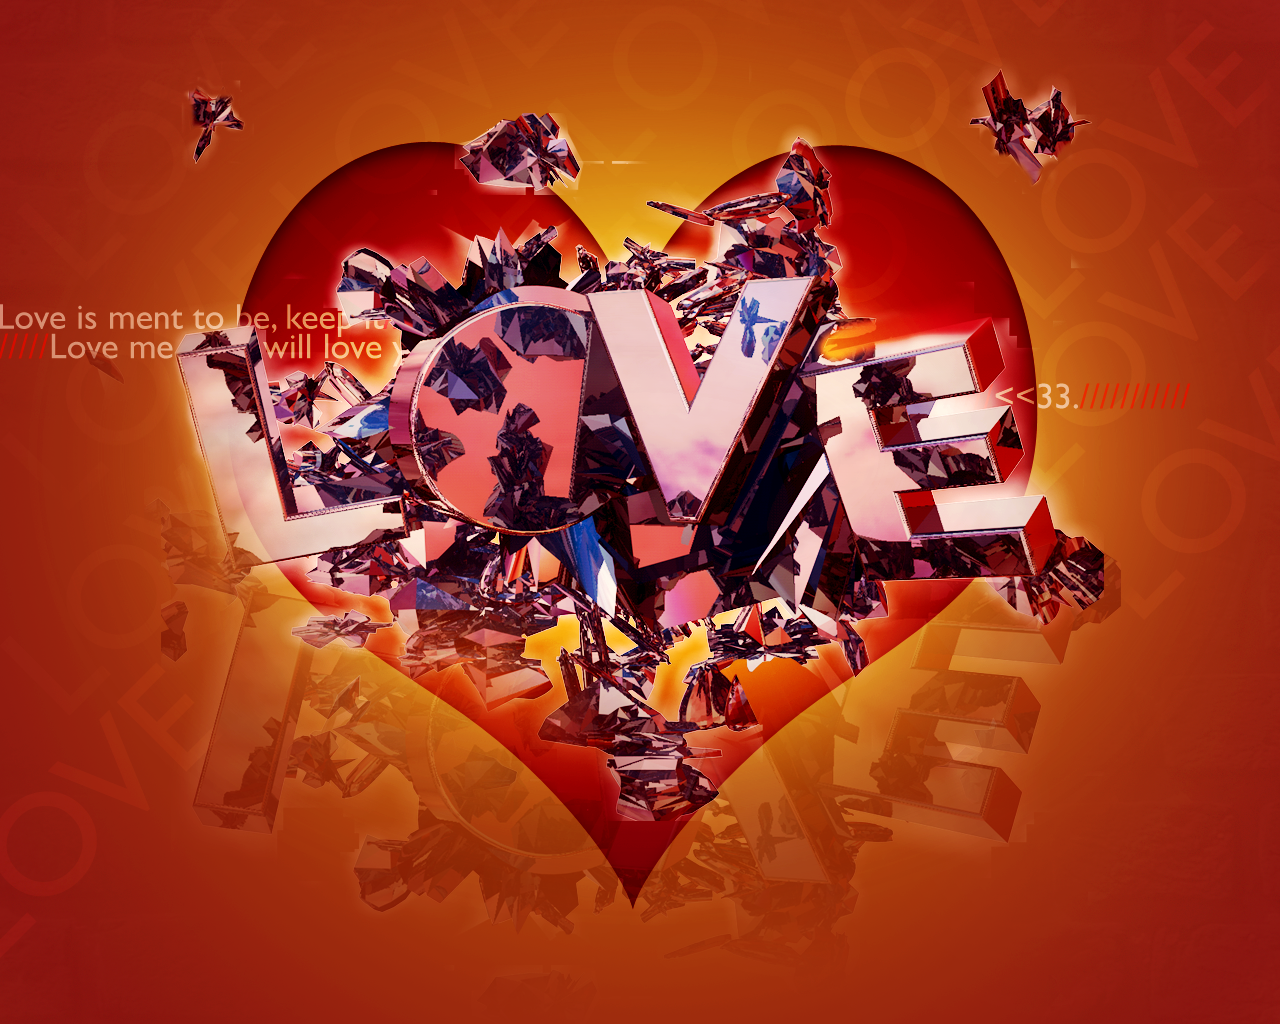 Love Wallpaper New : Amazing Wallpapers: New love photos wallpaper, new love wallpaper